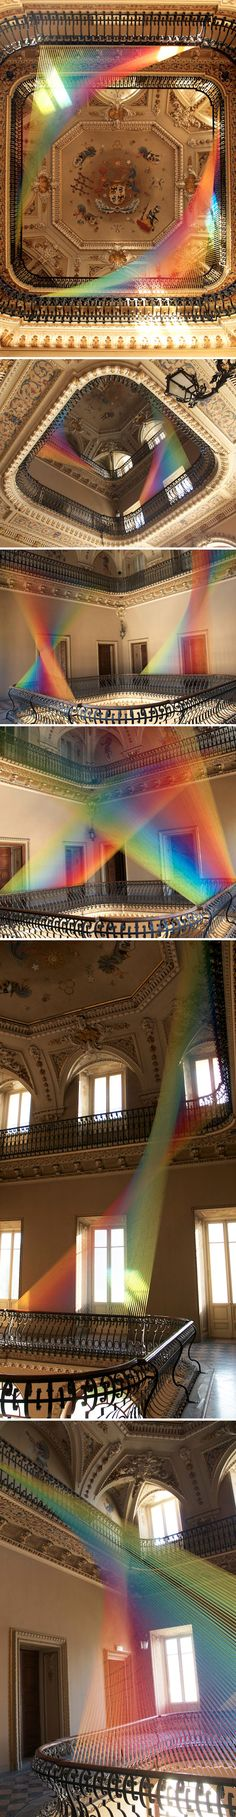 Thread installation by Mexican artist Gabriel Dawe | Como, Italy for Miniartextil.